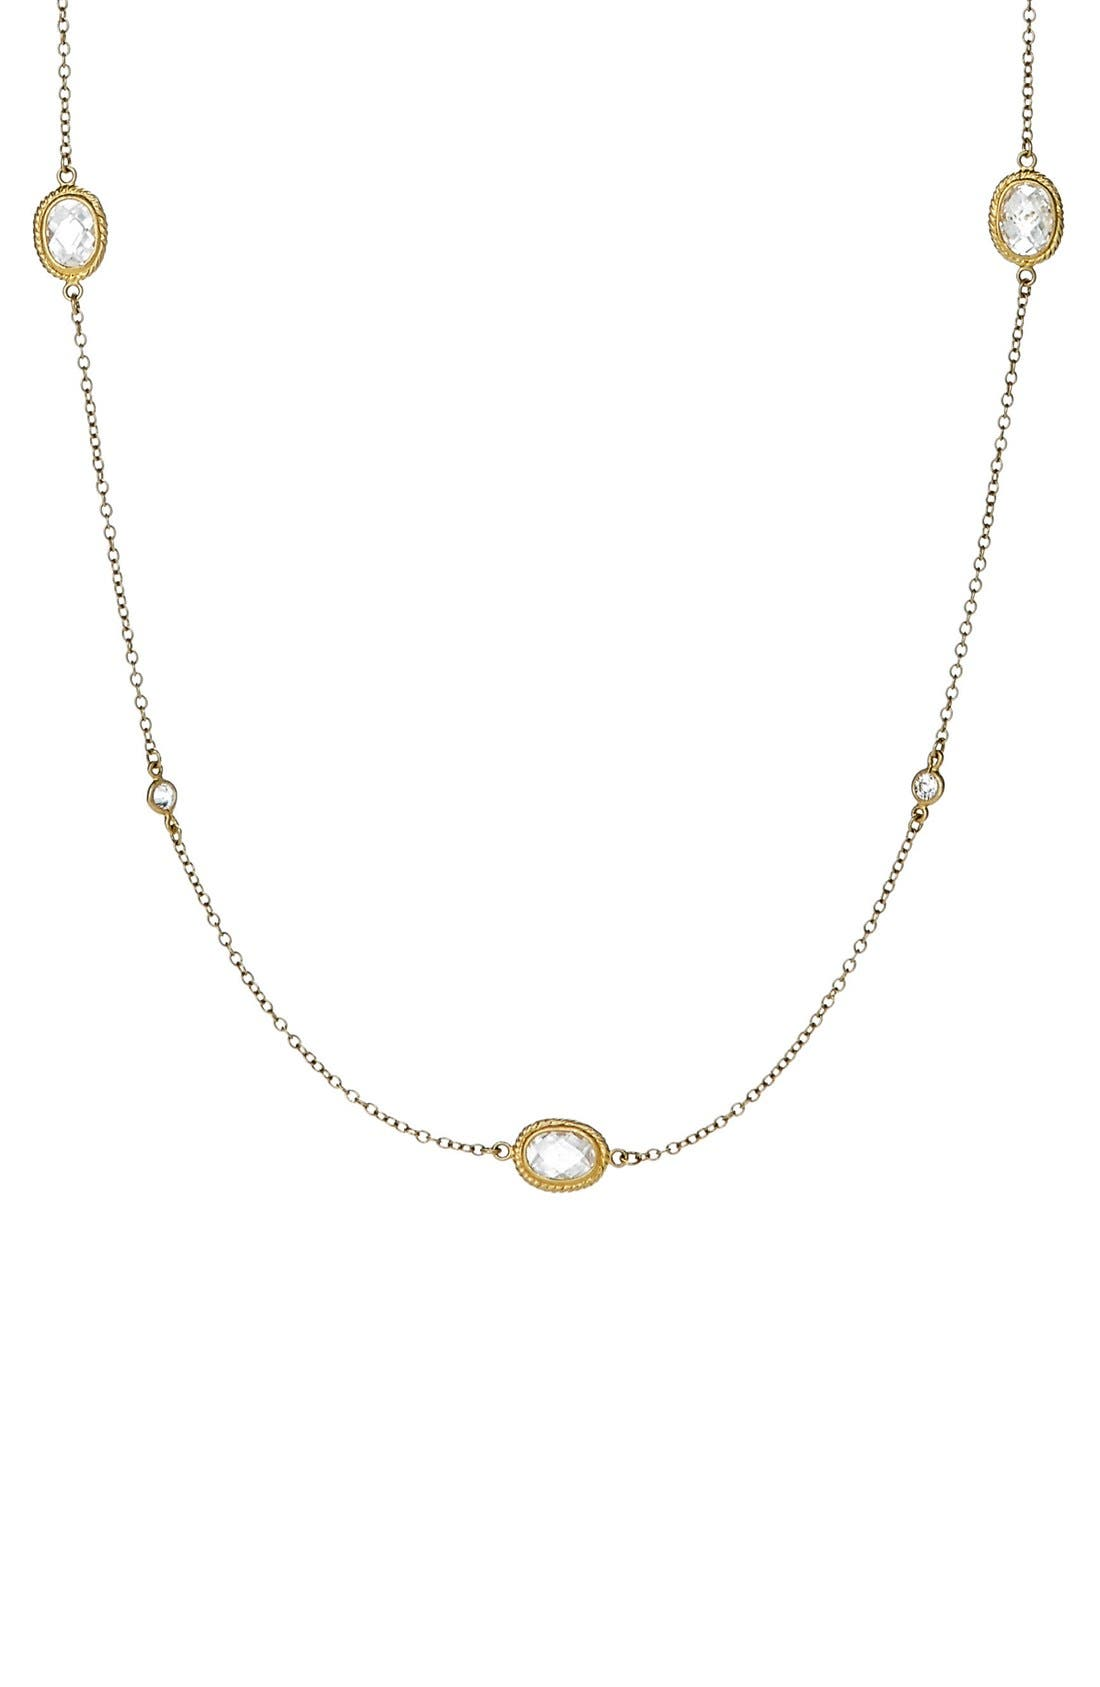 'Mercer' Raindrop Station Long Wrap Necklace,                             Alternate thumbnail 5, color,                             GOLD/ CLEAR